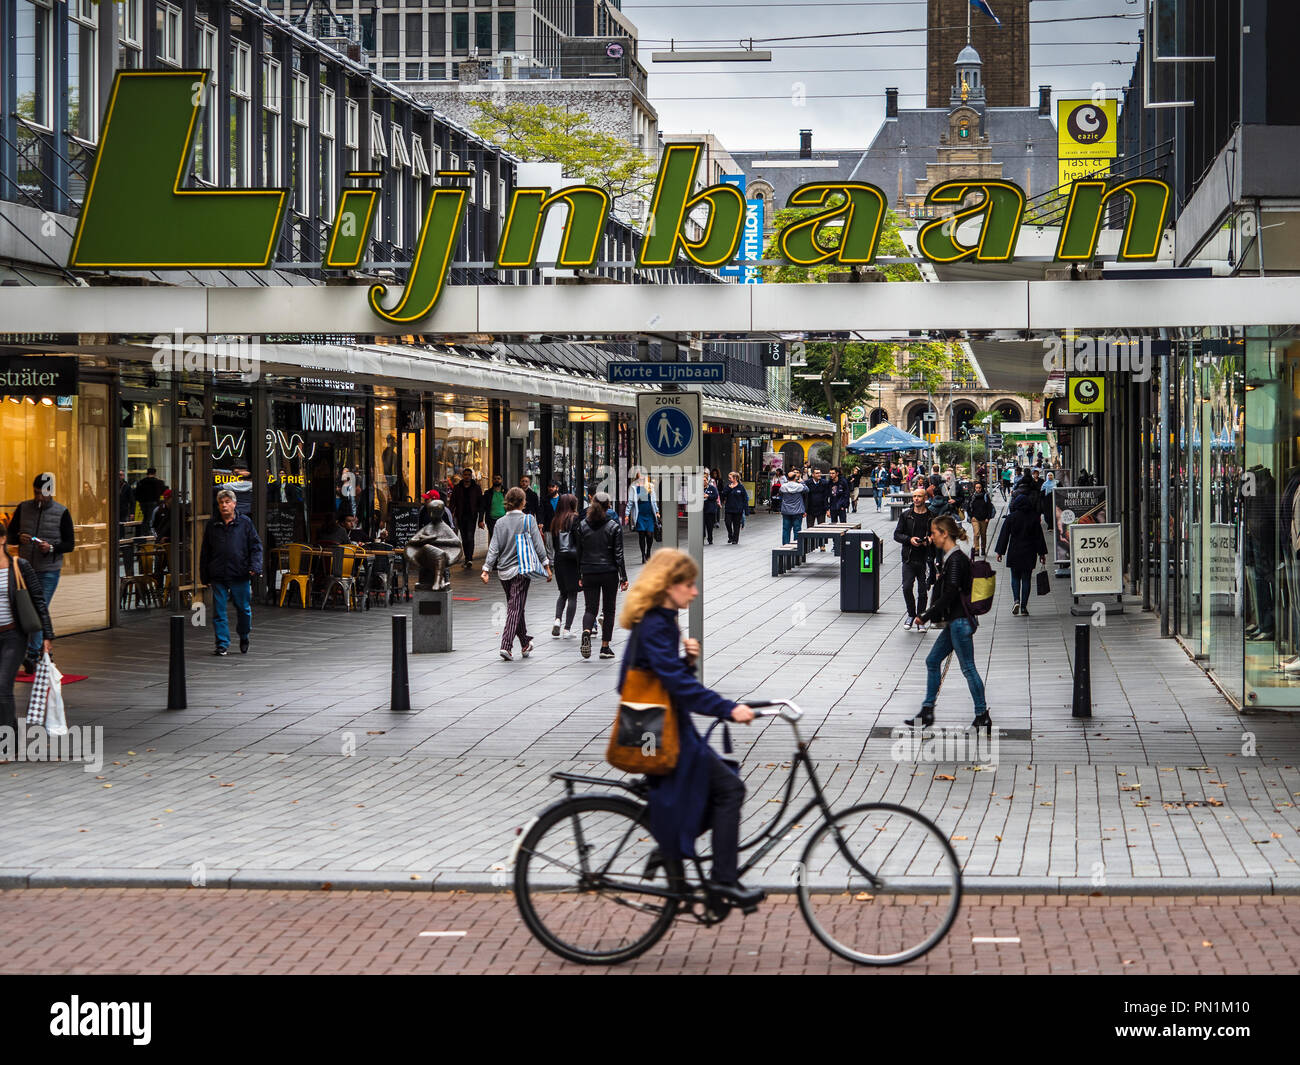 Lijnbaan Rotterdam - Lijnbaan was opened in 1953 as Europe's first ...